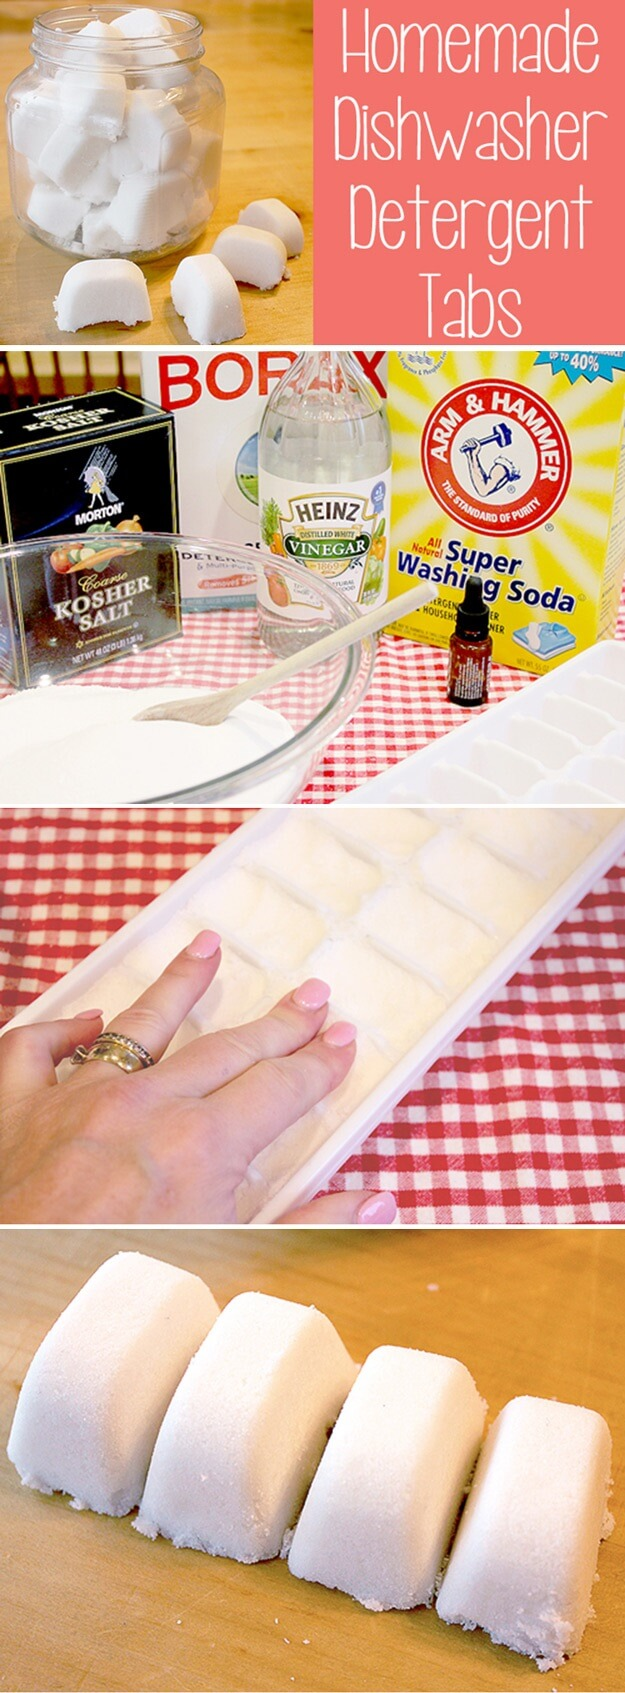 Homemade-Dishwasher-Detergent-Tabs-k4craft Clever DIY Projects: Creative way to Use of Ice Cube Tray